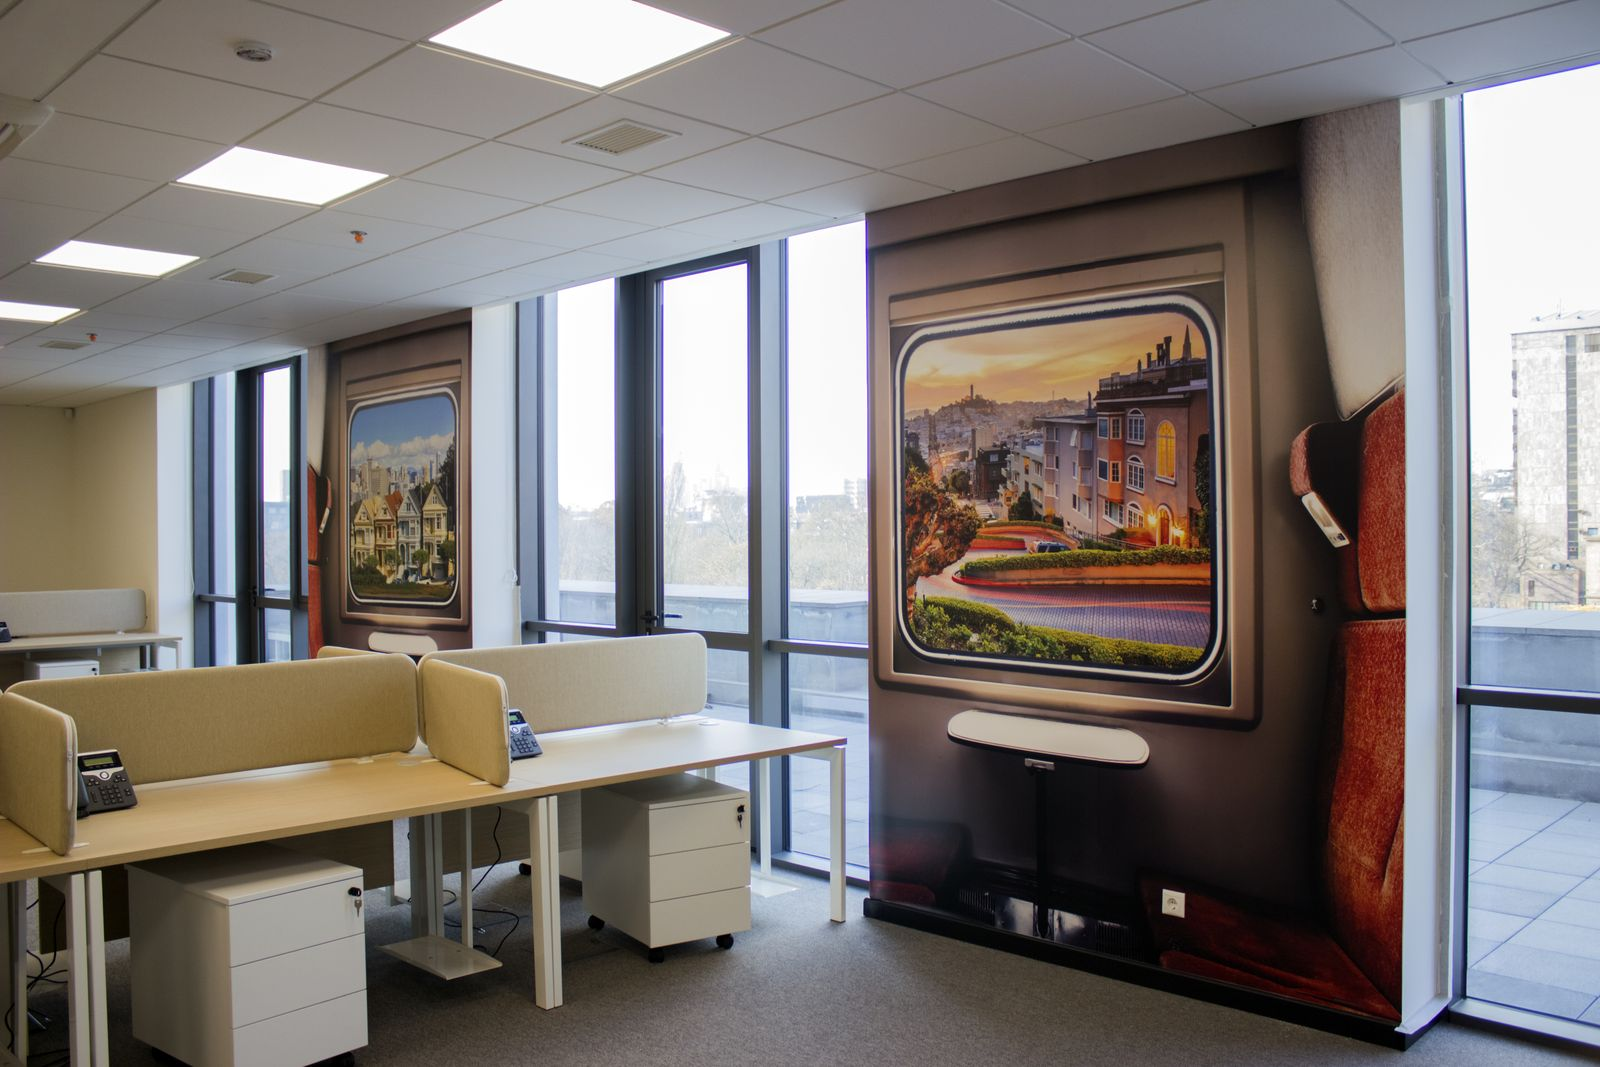 decorative interior wall signs with beautiful city scenery made of opaque vinyl